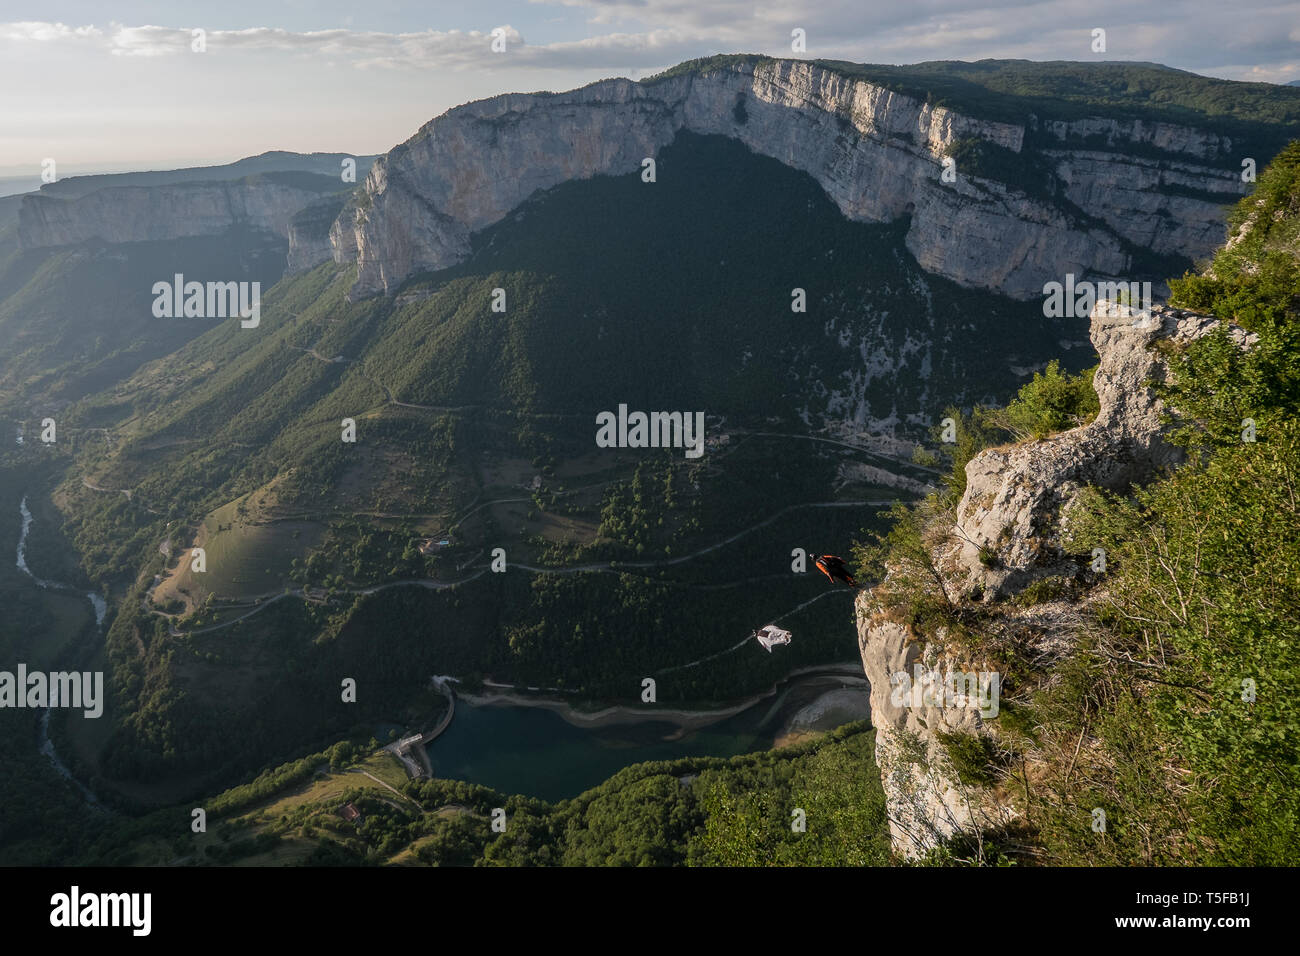 CHORANCHE, FRANCE - AUGUST 19: Two wingsuit jumpers jumping from a cliff in france, Auvergne-rhône-alpes, Choranche, France on August 19, 2015 in Choranche, France. (Photo by Fred Marie/Art in All of Us/Corbis via Getty Images) - Stock Image